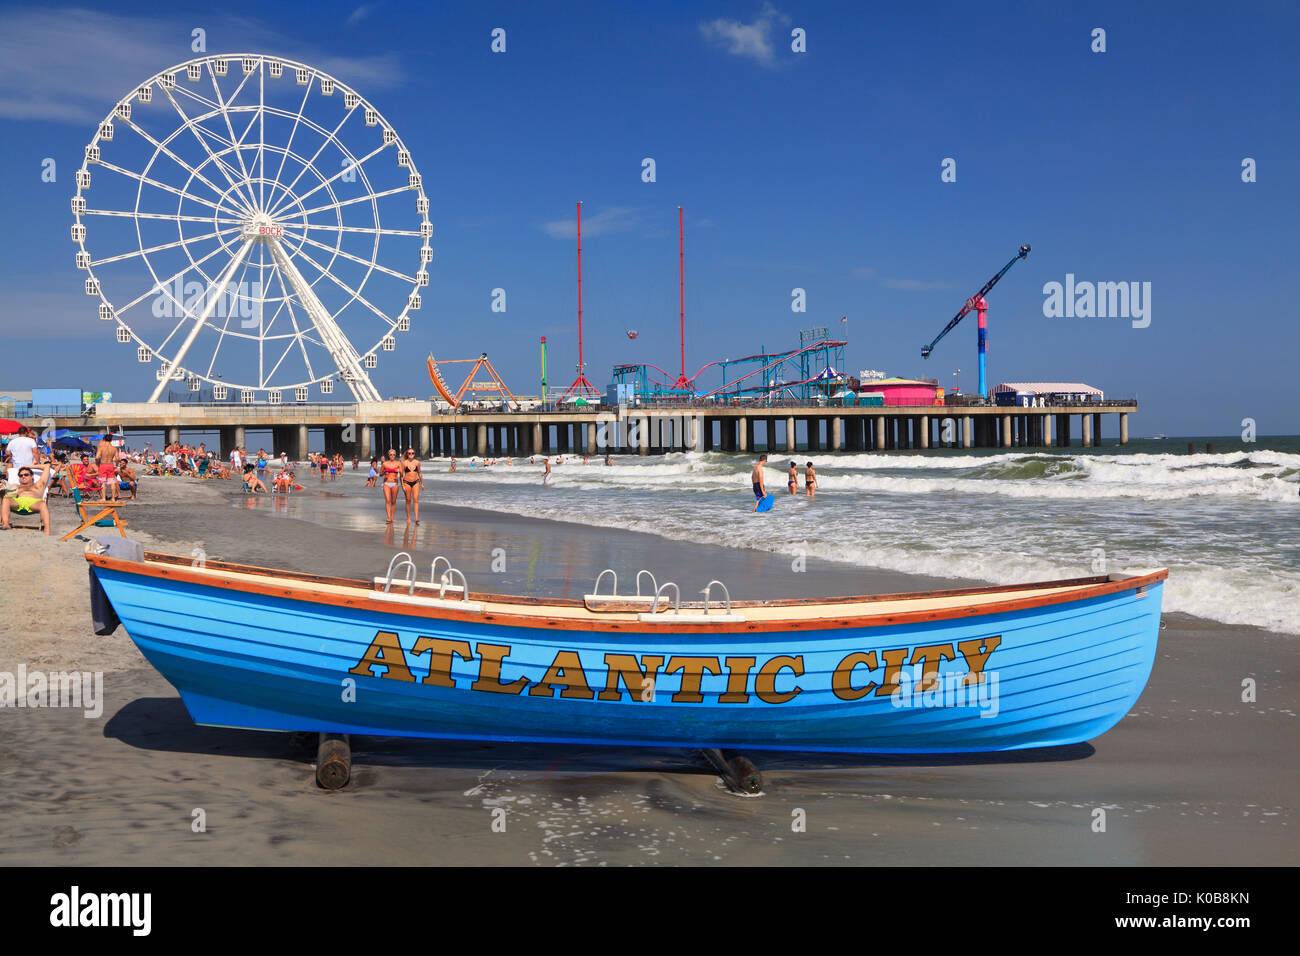 ATLANTIC CITY, NEW JERSEY - AUGUST 19, 2017: Boat lifeguard, beach and steel Pier in Atlantic City. Established in the 1800s as a health resort, today - Stock Image